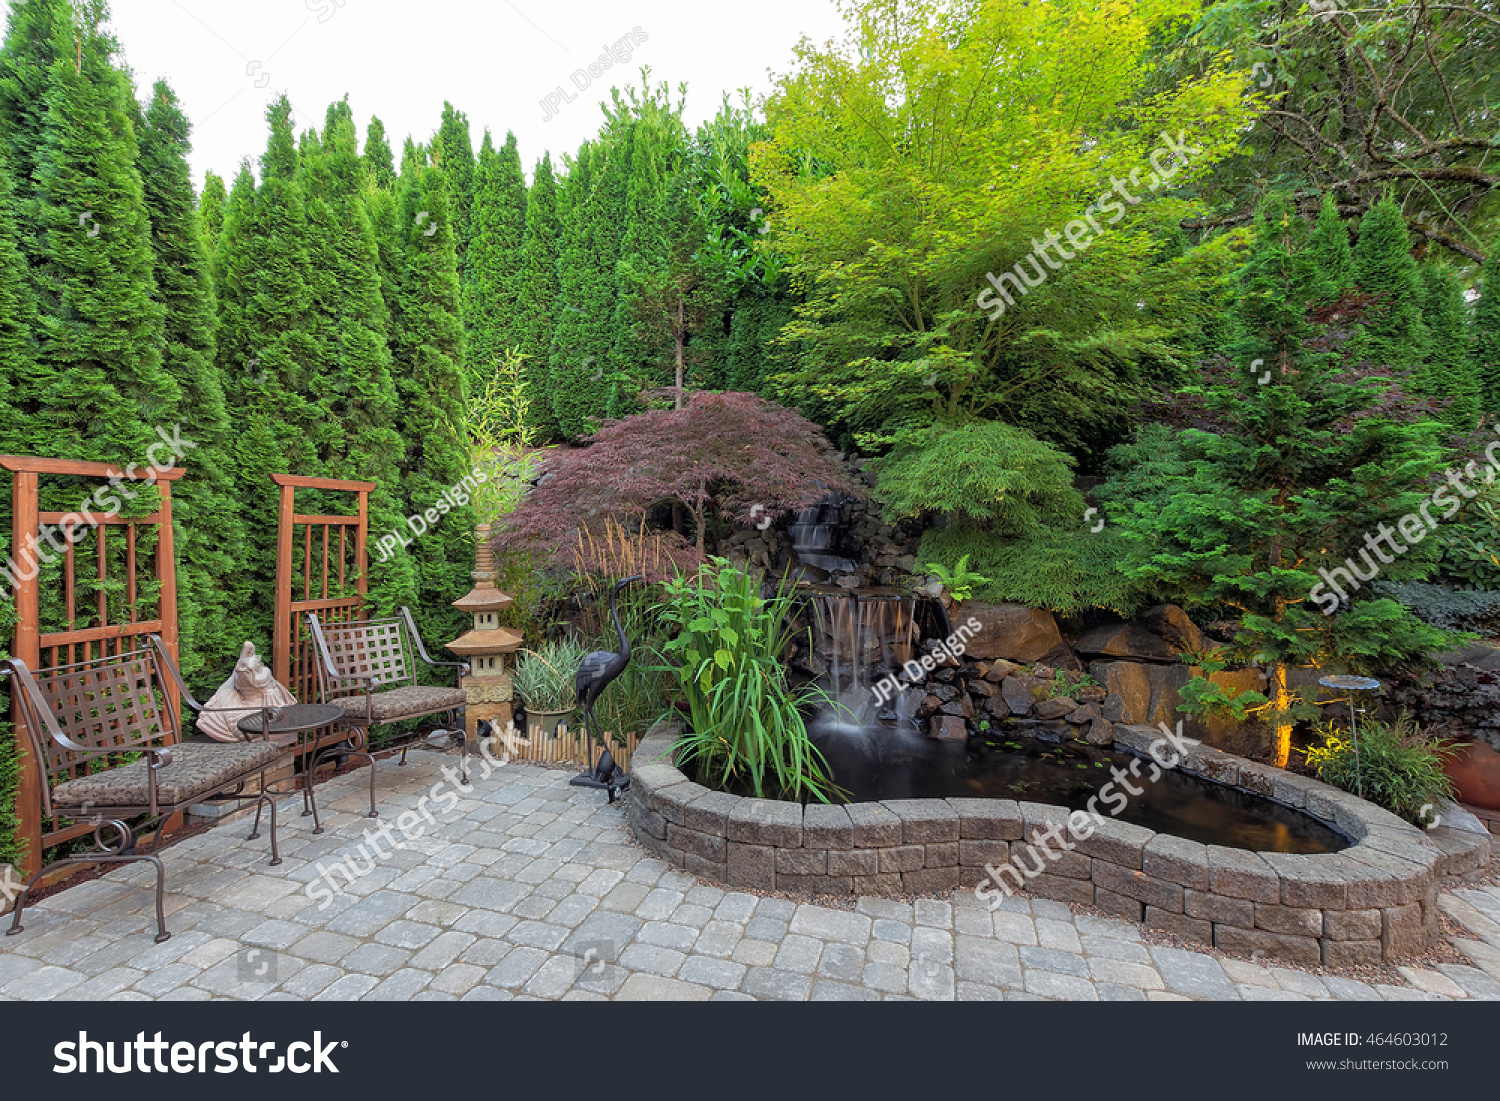 backyard garden landscaping waterfall pond trees stock photo